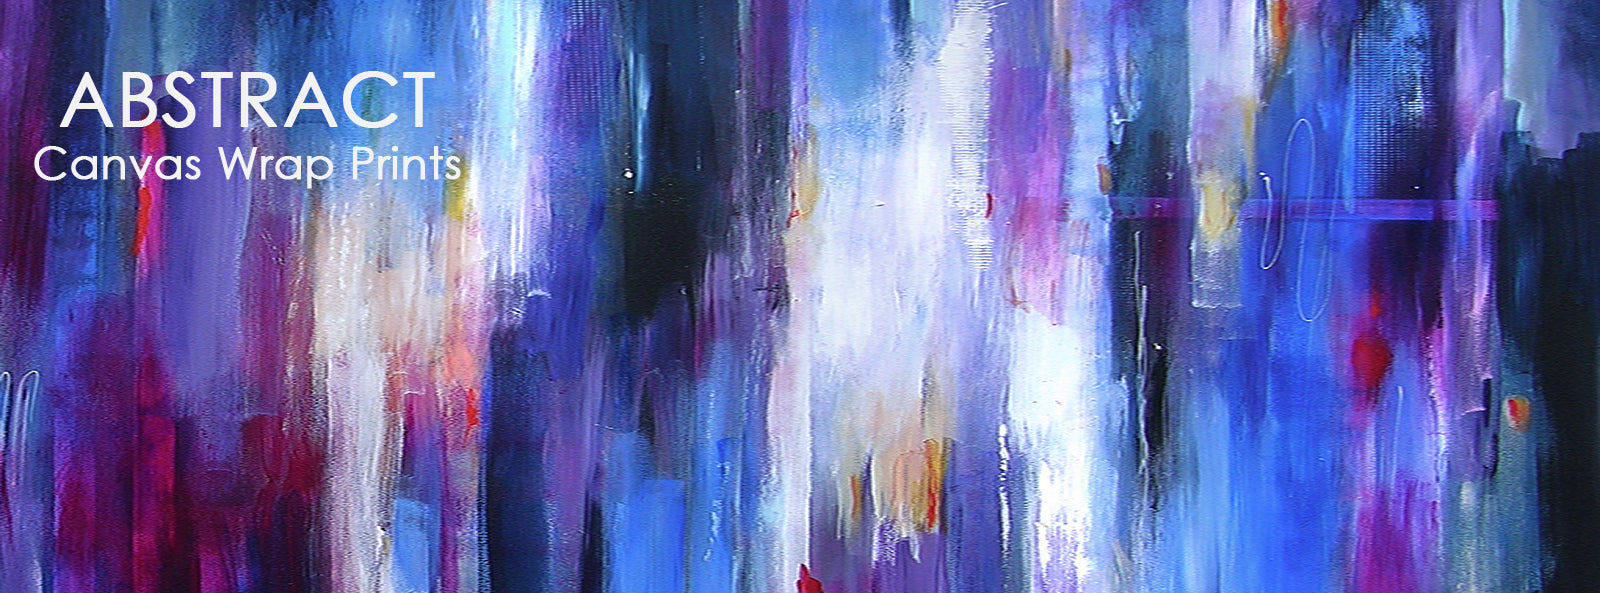 Abstract art prints on canvas, abstract canvas wrap art prints. contemporary abstract painting prints.